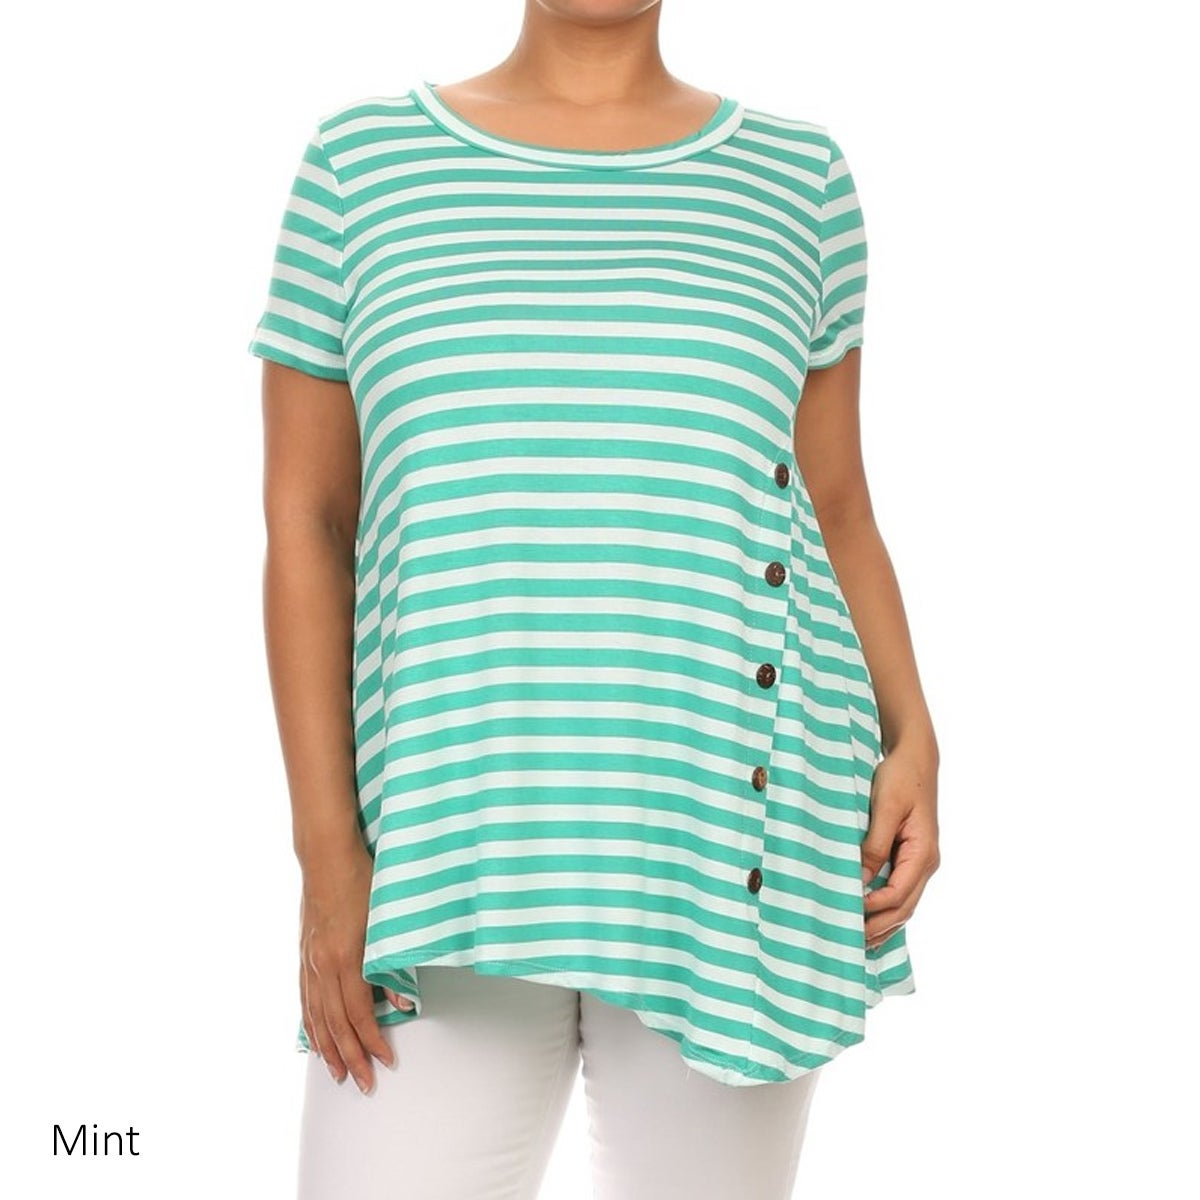 ca8a5ac42 Shop MOA Collection Women's Plus-size Multi-colored Rayon Striped Button  Tab Top - Free Shipping On Orders Over $45 - Overstock - 11878232